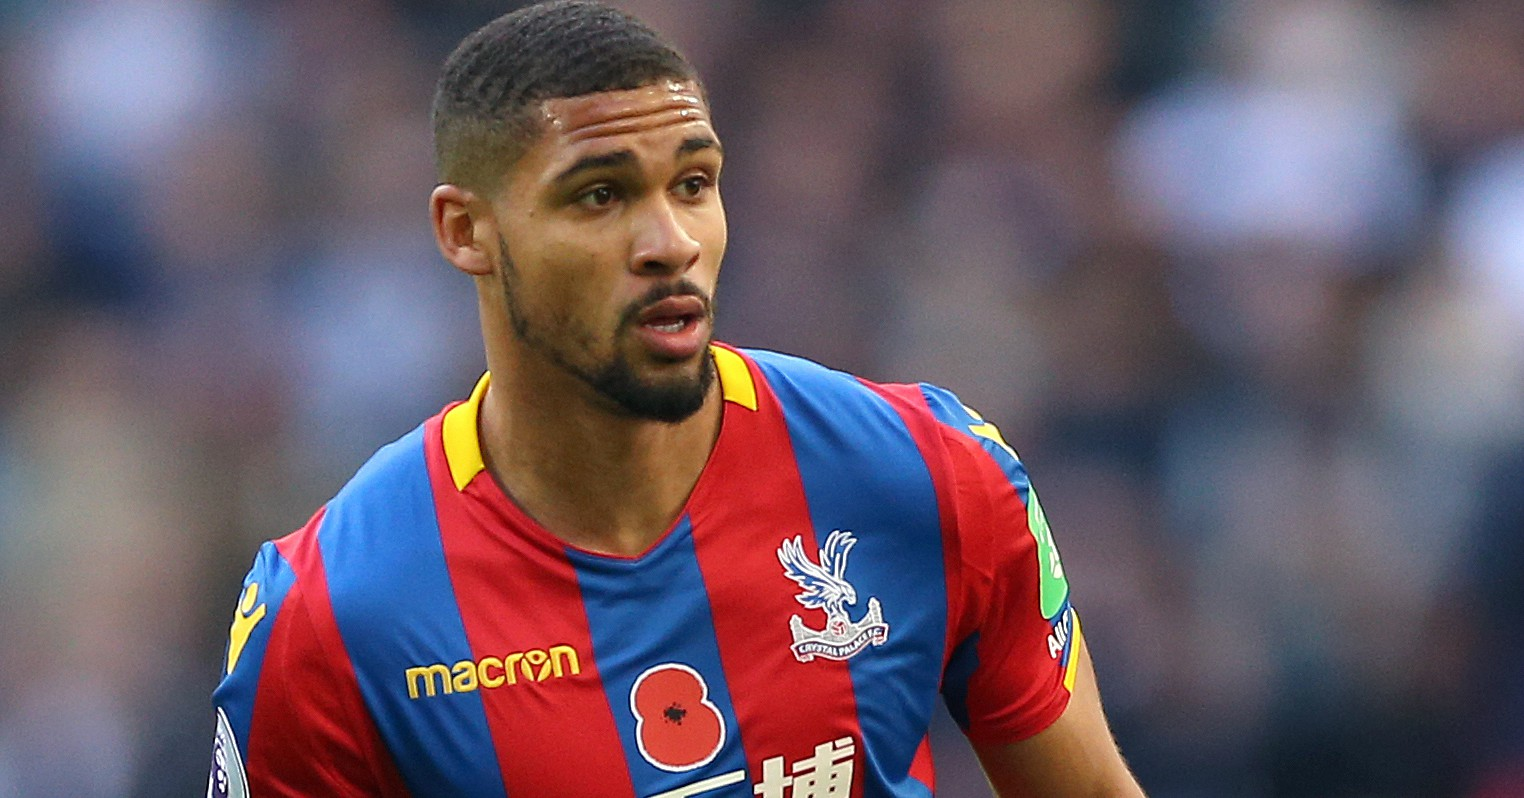 Fa 2014 08 sports wagering guidelines that you cana t afford to overlook -  Easy To Keep Loftus Cheek Grounded Hodgson